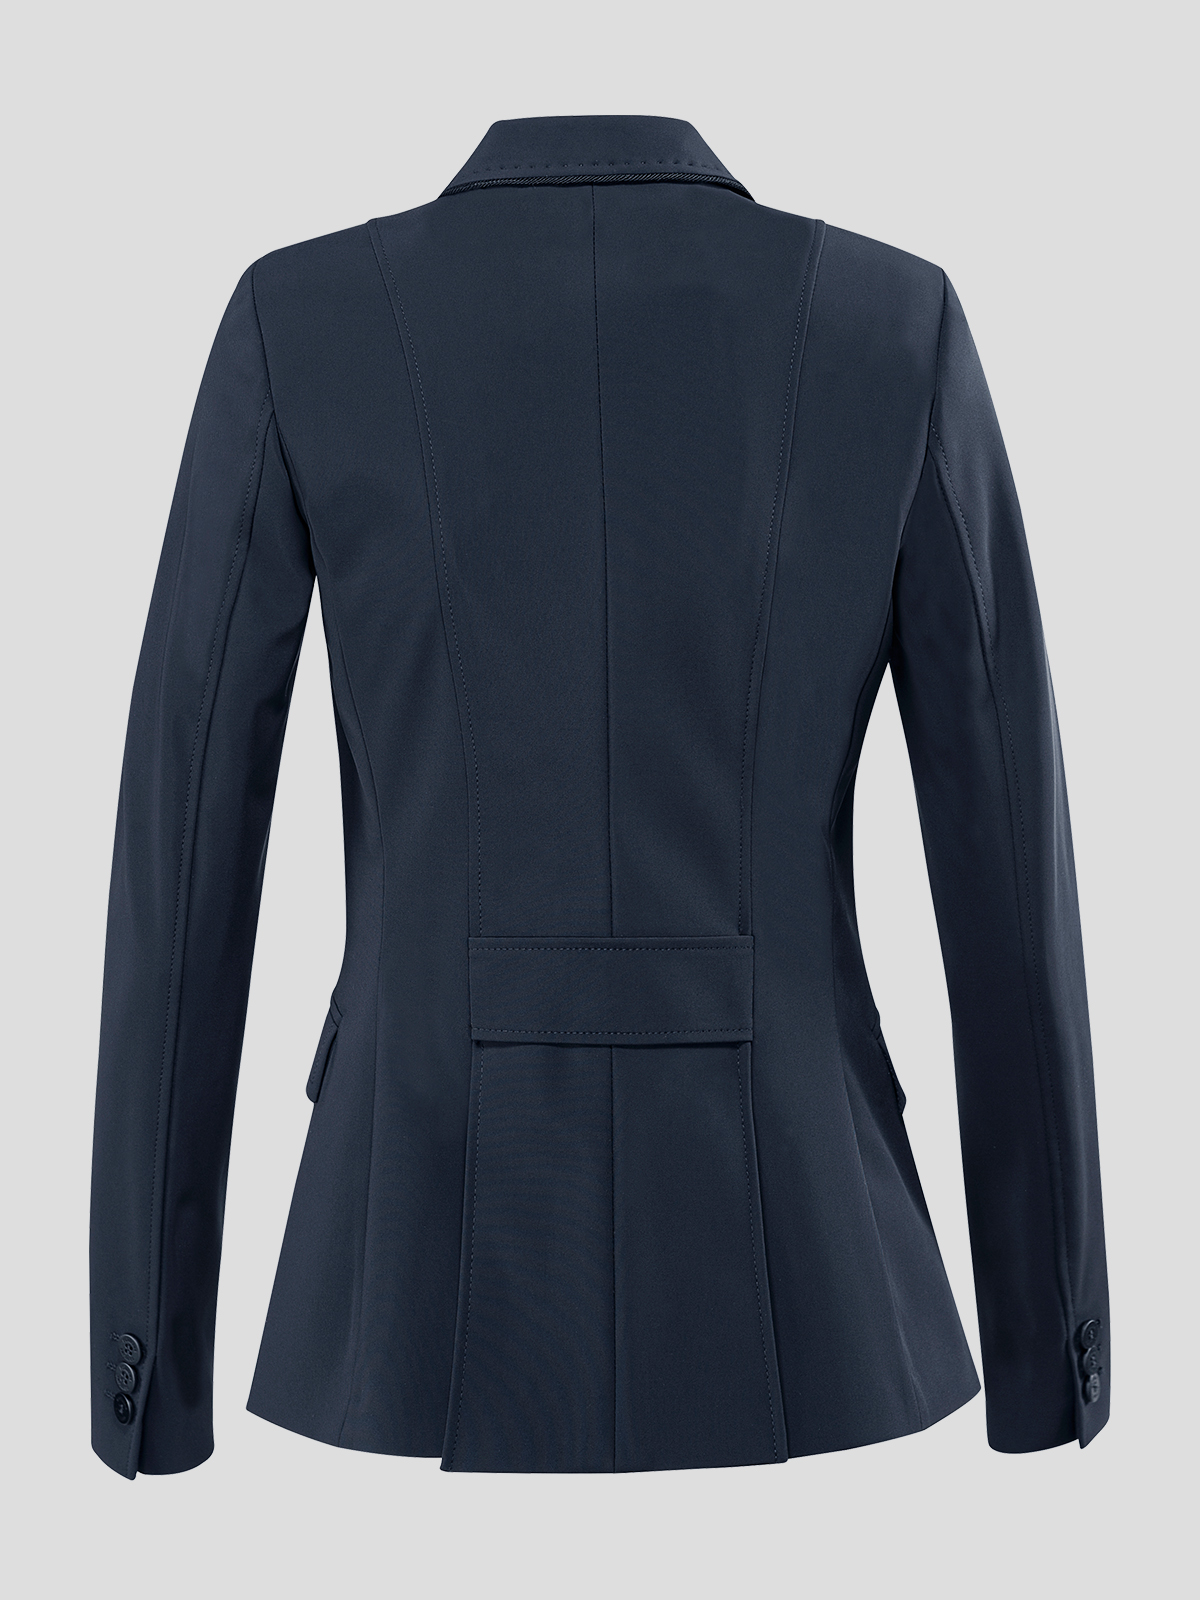 WOMEN'S SHOW JACKET WITH OUTLINE LOGO IN X-COOL 8